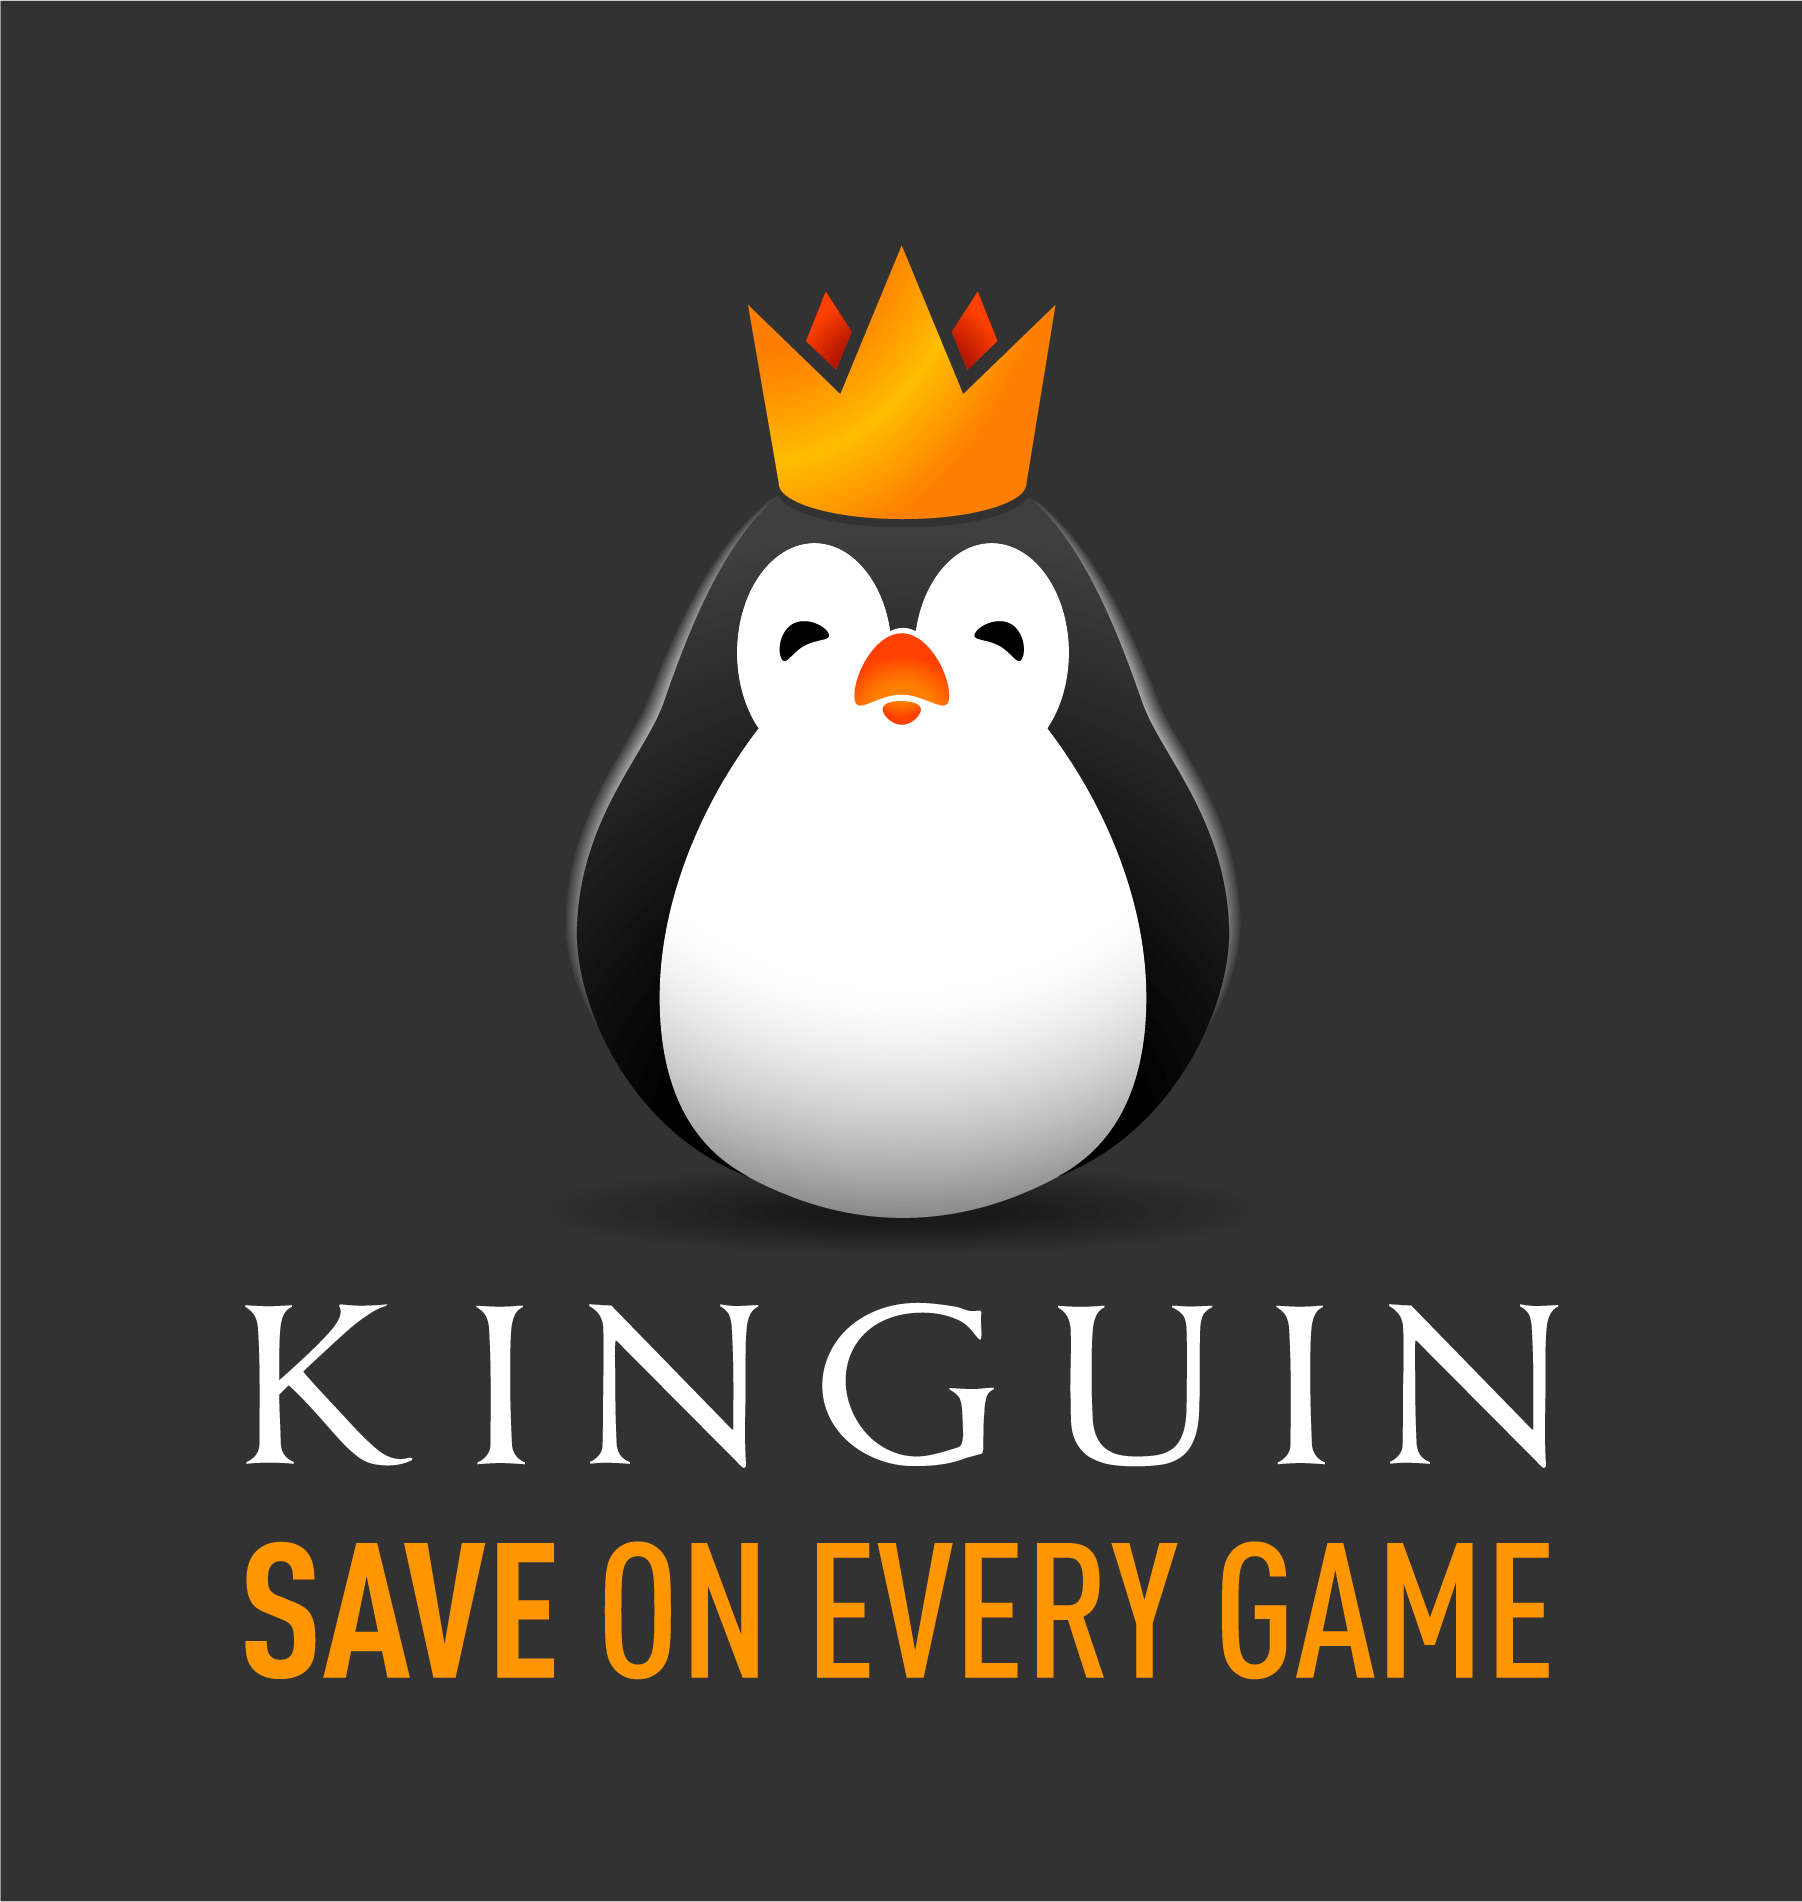 Kinguin - Save on every game